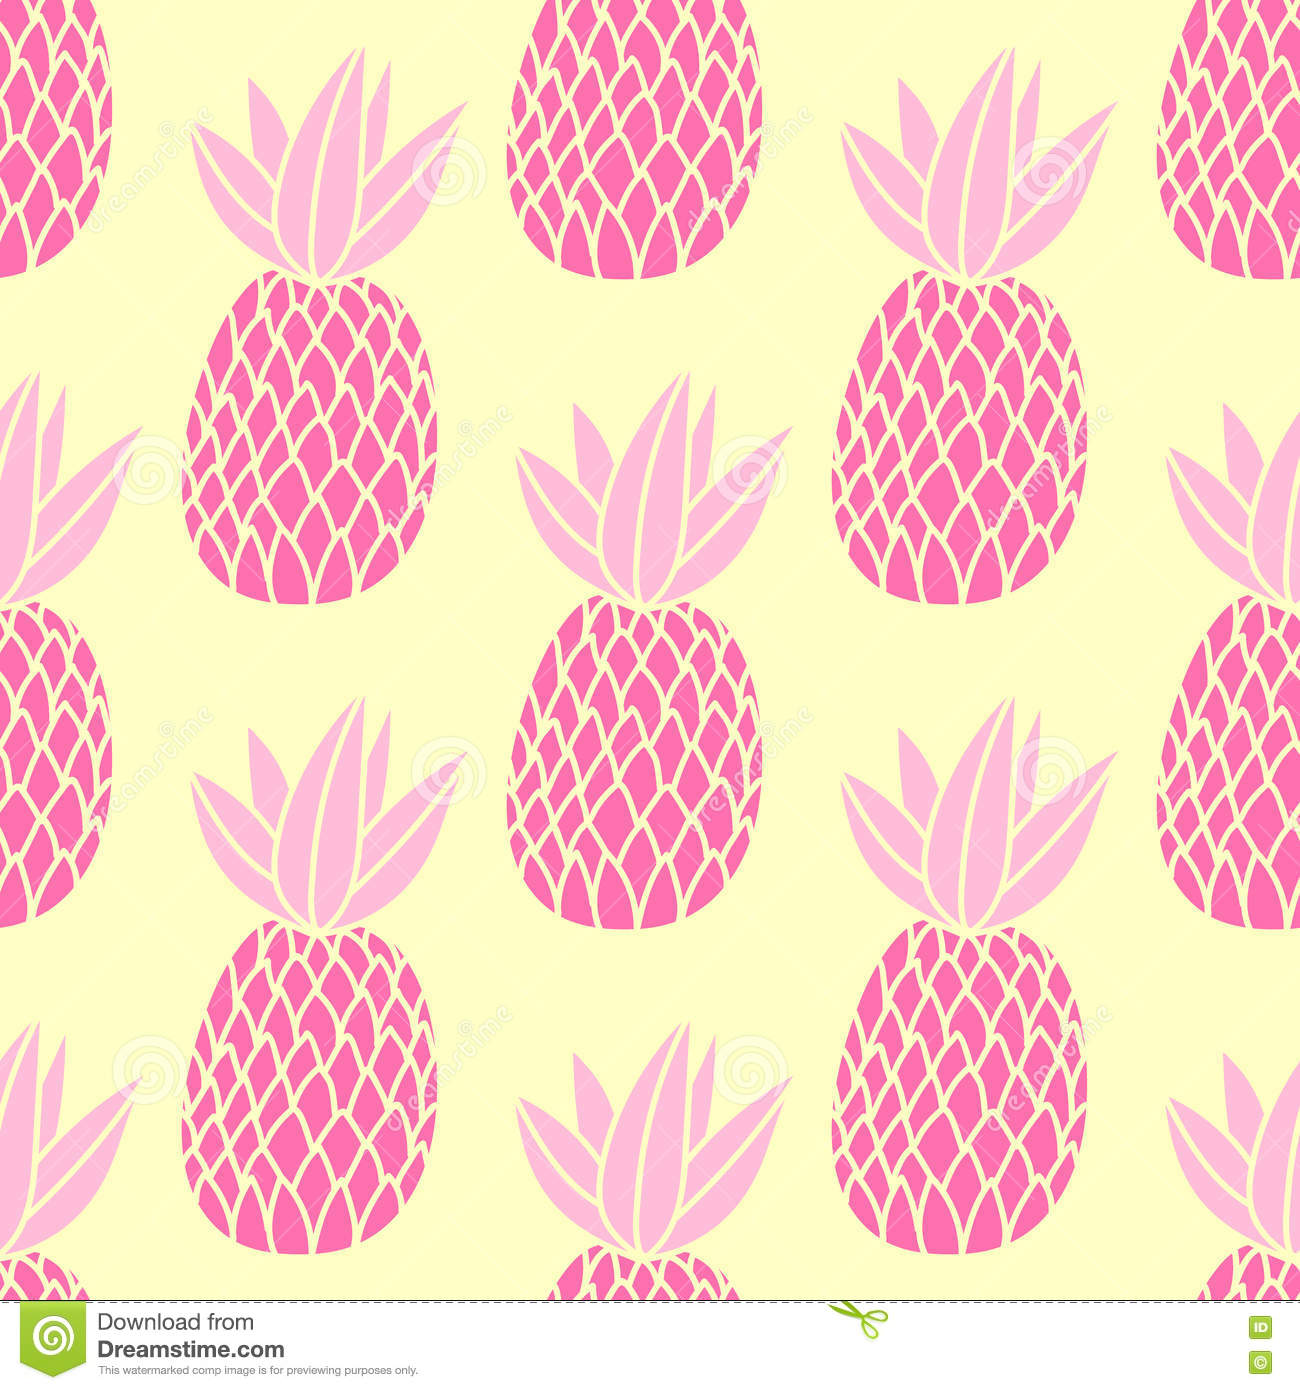 Pineapples on the white background. Vector seamless pattern with tropical fruit. Cute girl style, pink and yellow